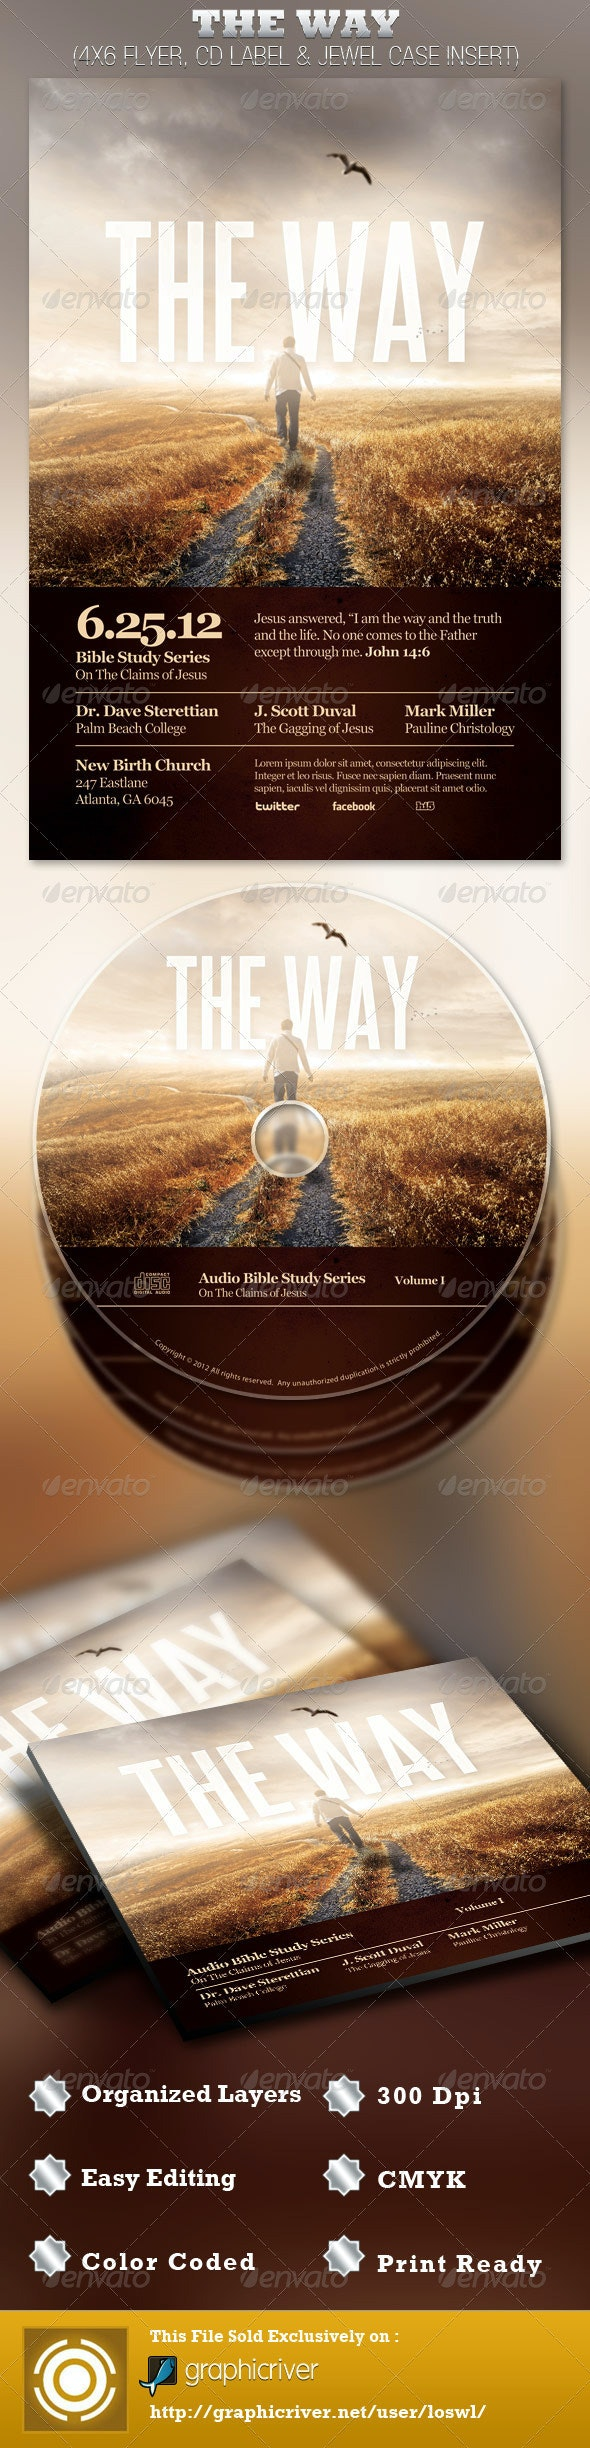 The Way Church Flyer and CD Template - Church Flyers